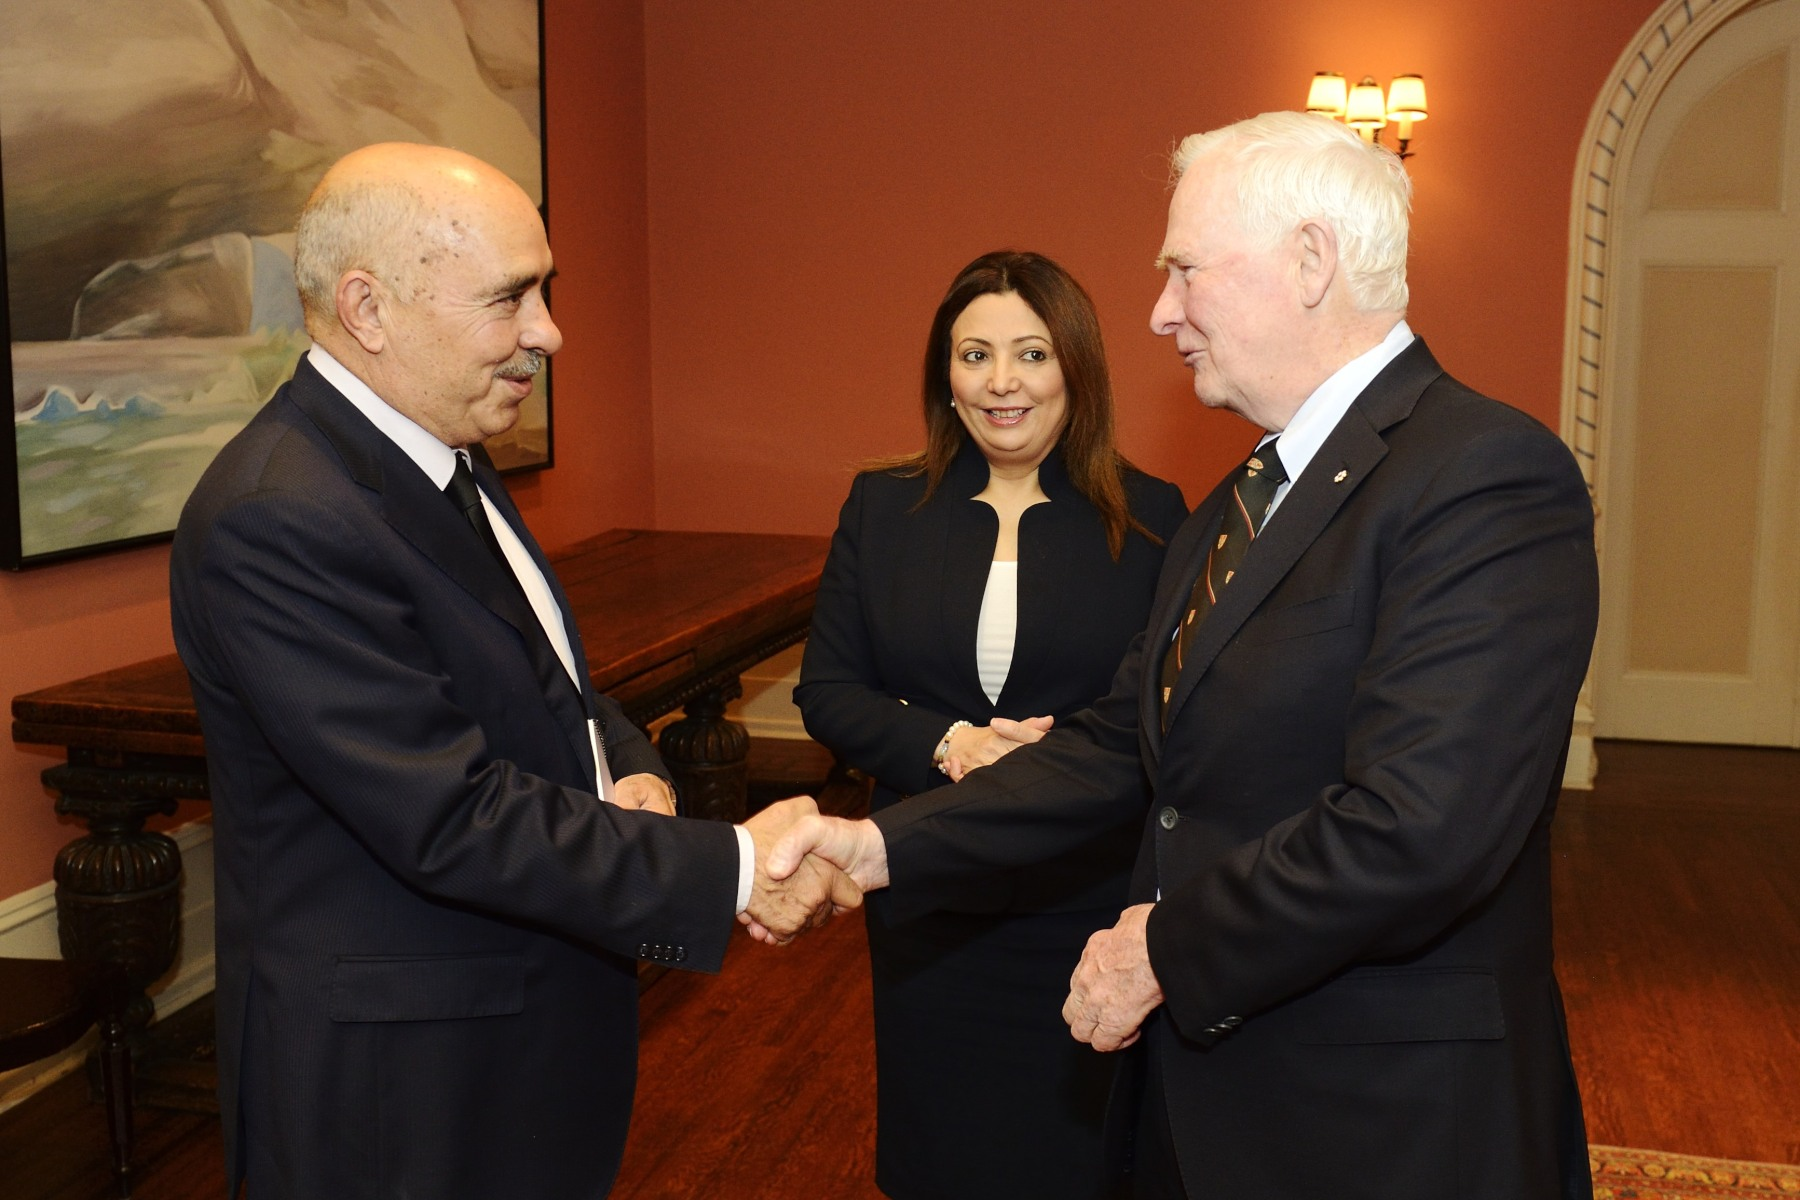 The Governor General the greeted Mr. Abdessatar Ben Moussa, President of the Tunisian Human Rights League.